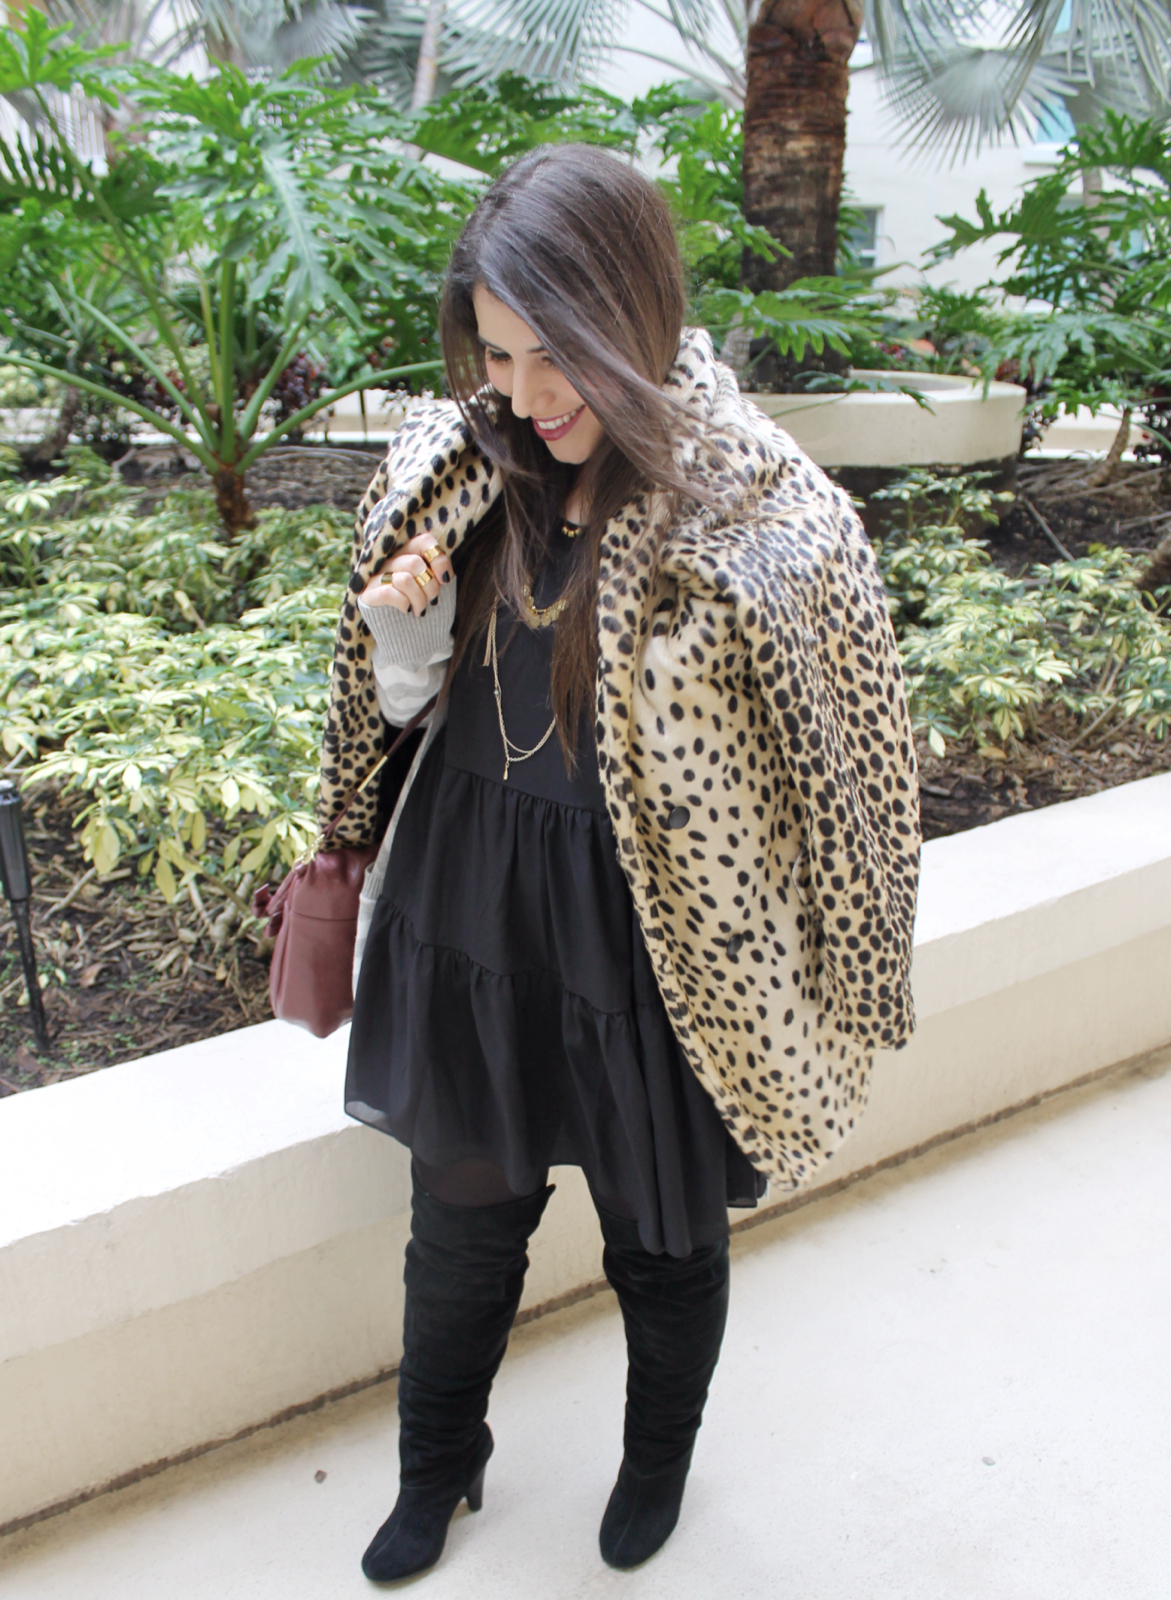 T.J.Maxx Fall Layering #Maxxinista leopard coat chevron cardigan gold necklaces foley corinna wine bag necklaces gold rings knuckledusters over-the-knee boots _ glitterinc.com 11